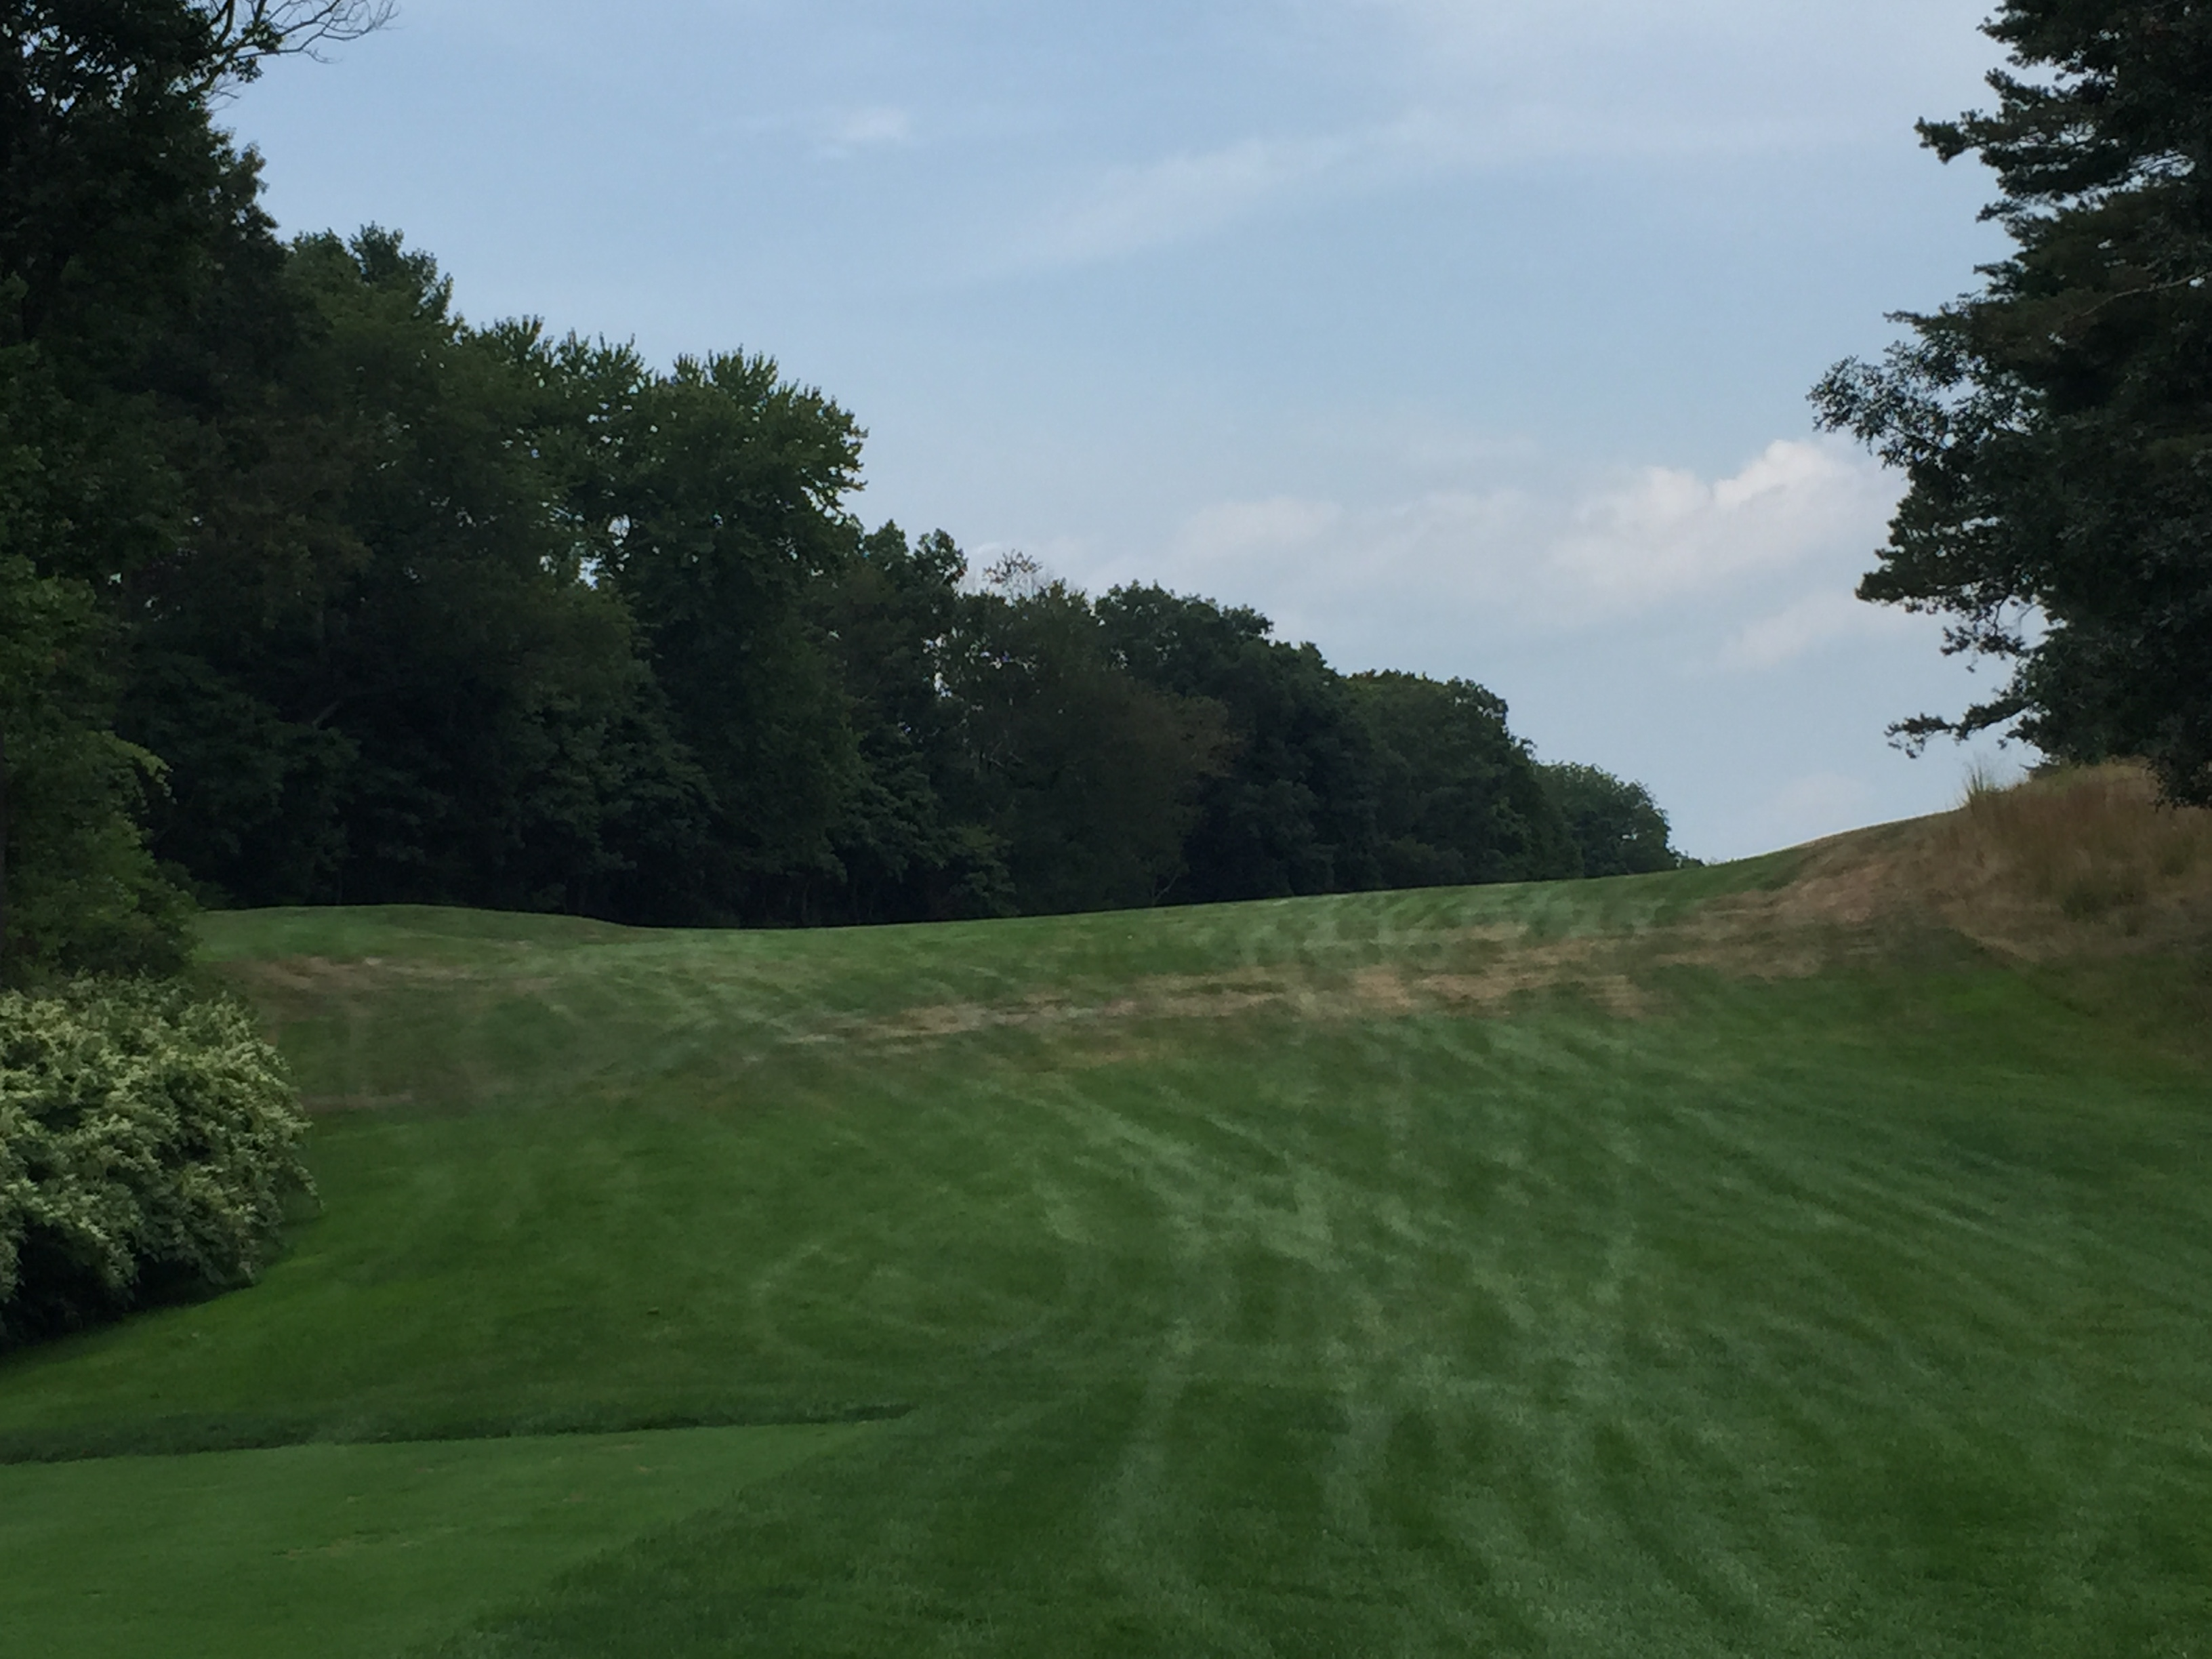 The scary fade tee shot on this par 5 . . . you run out of room on the left quickly!